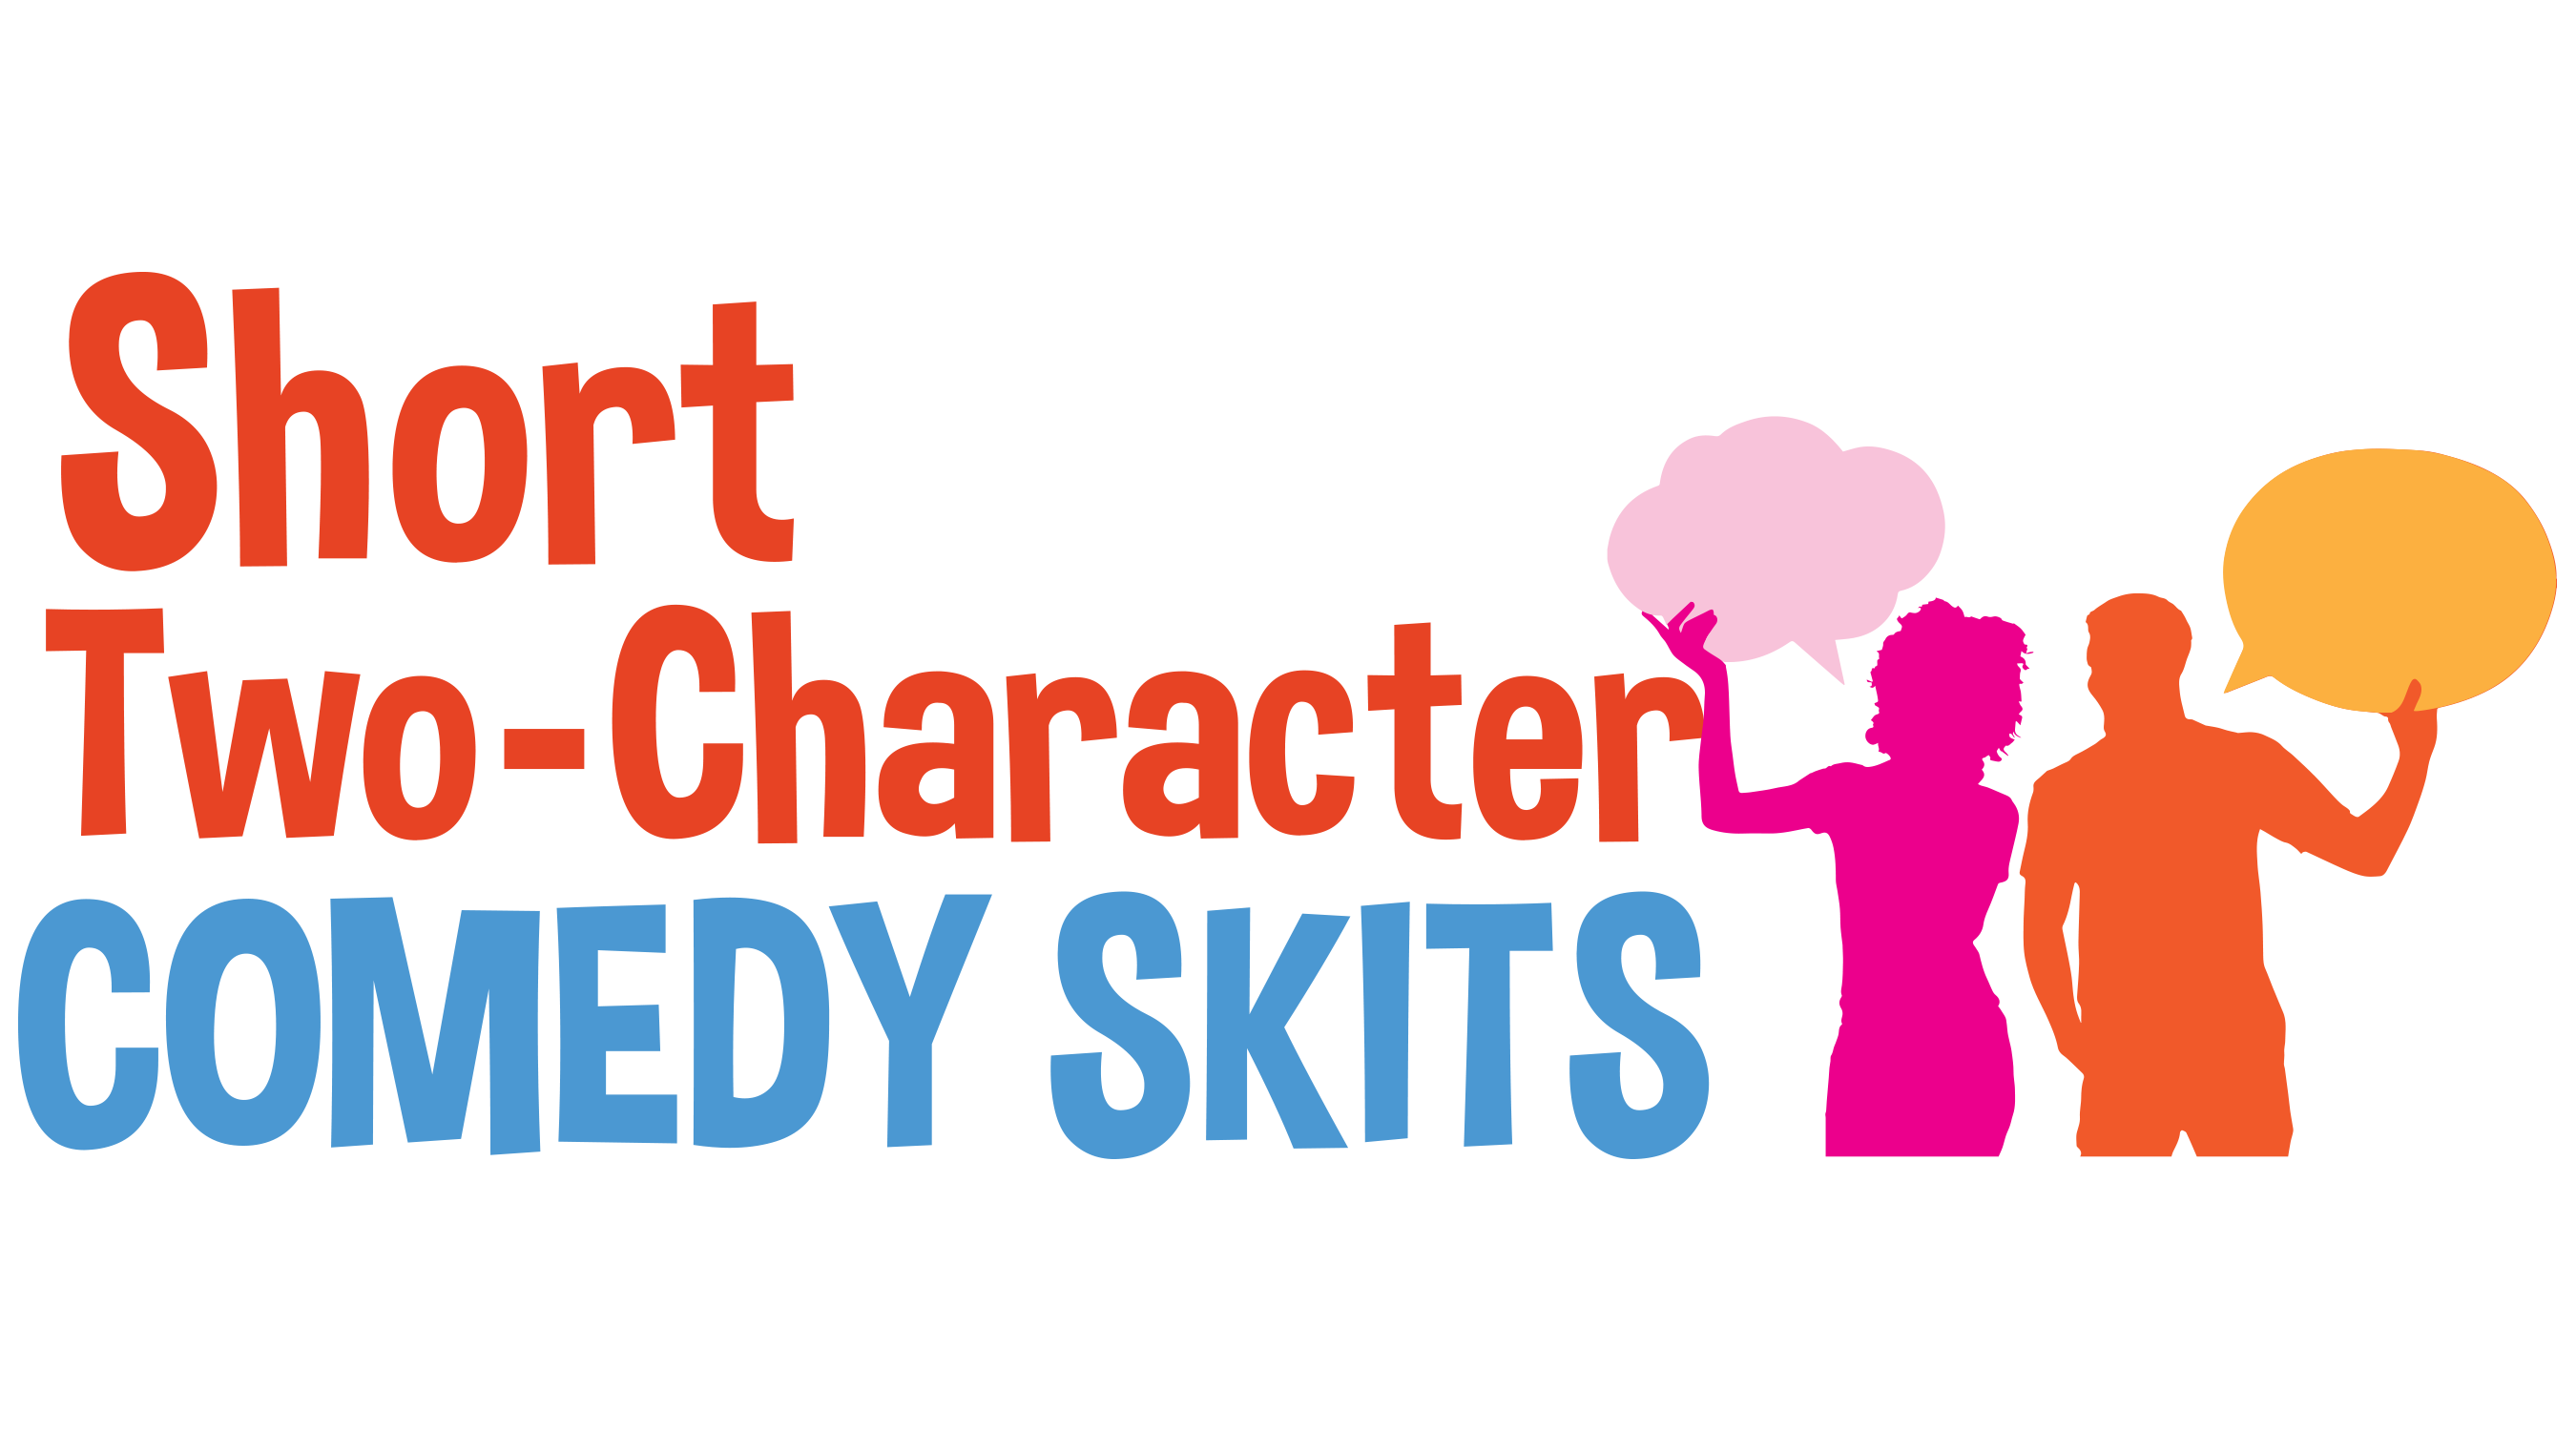 Short Two-Character Comedy Skits